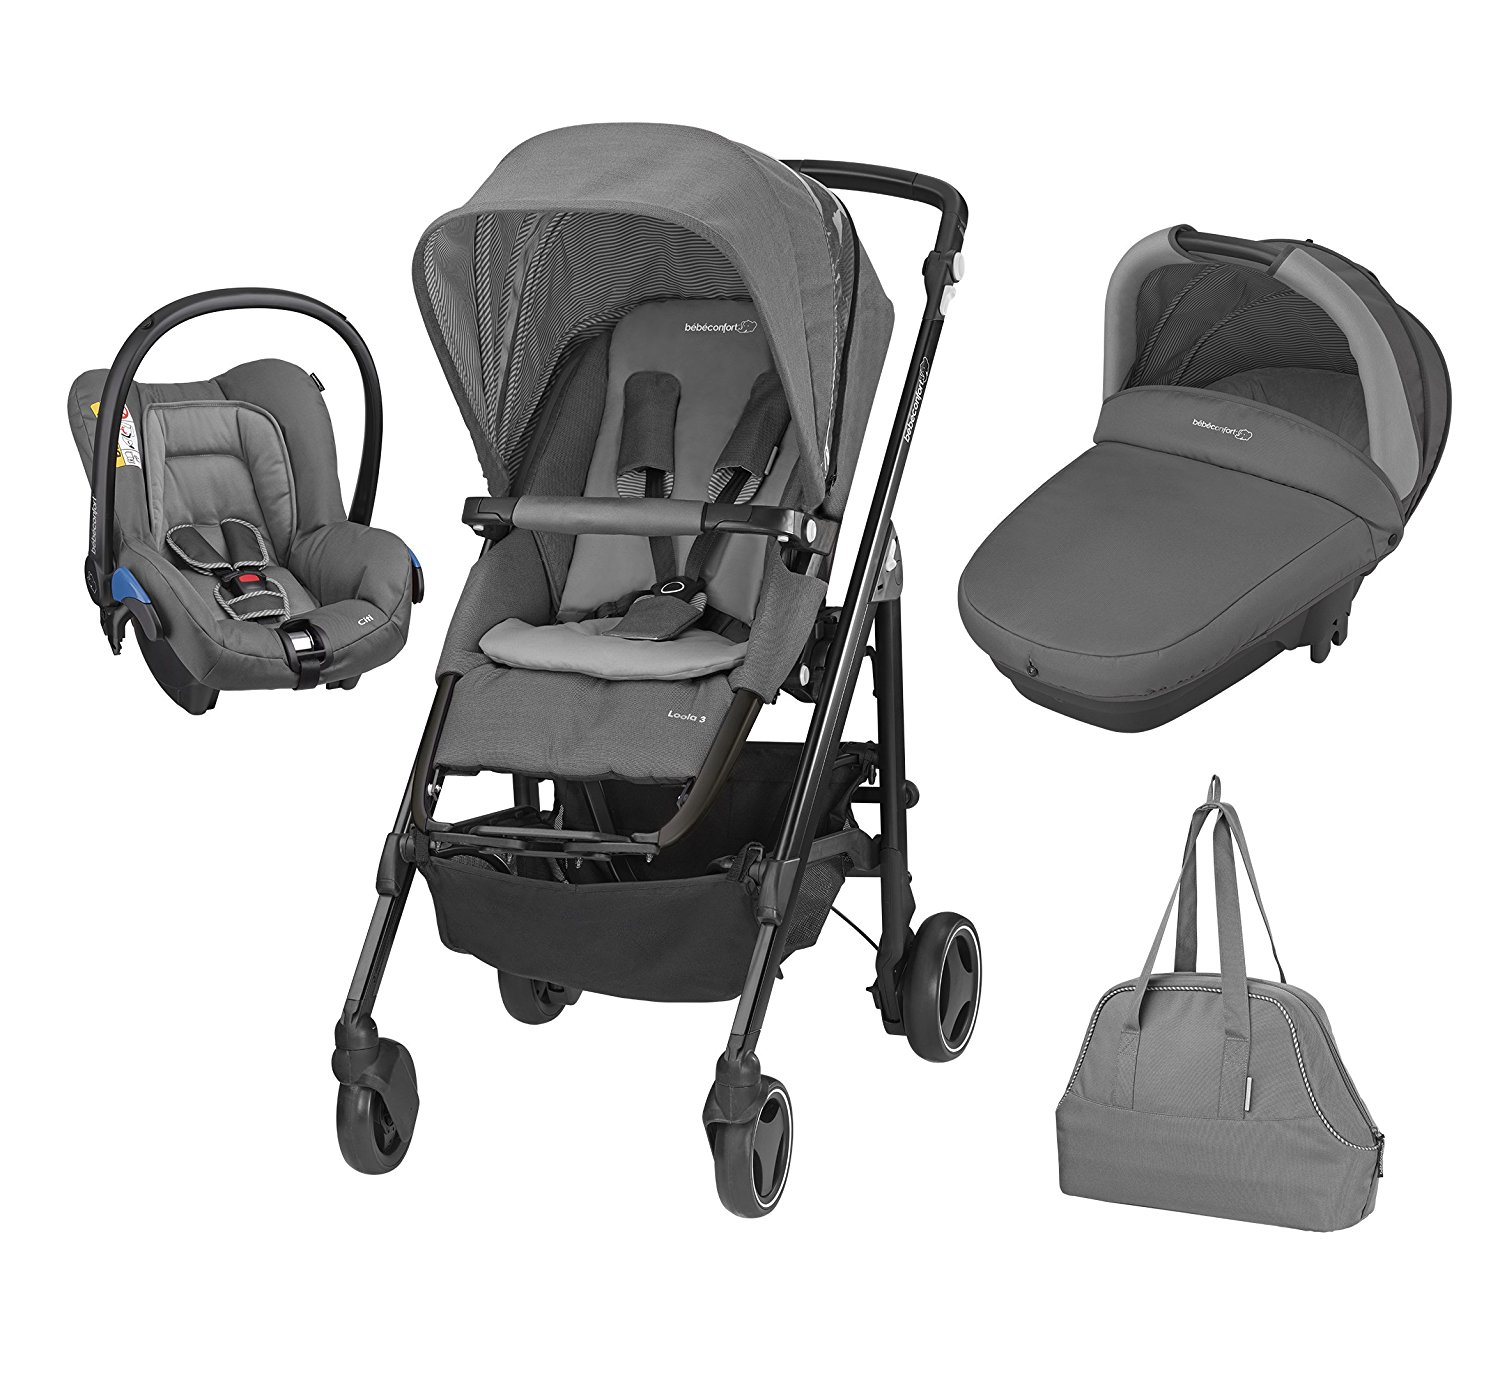 bebe Confort Poussette Combinee Trio Loola Excel Collection 2016 Concrete Grey